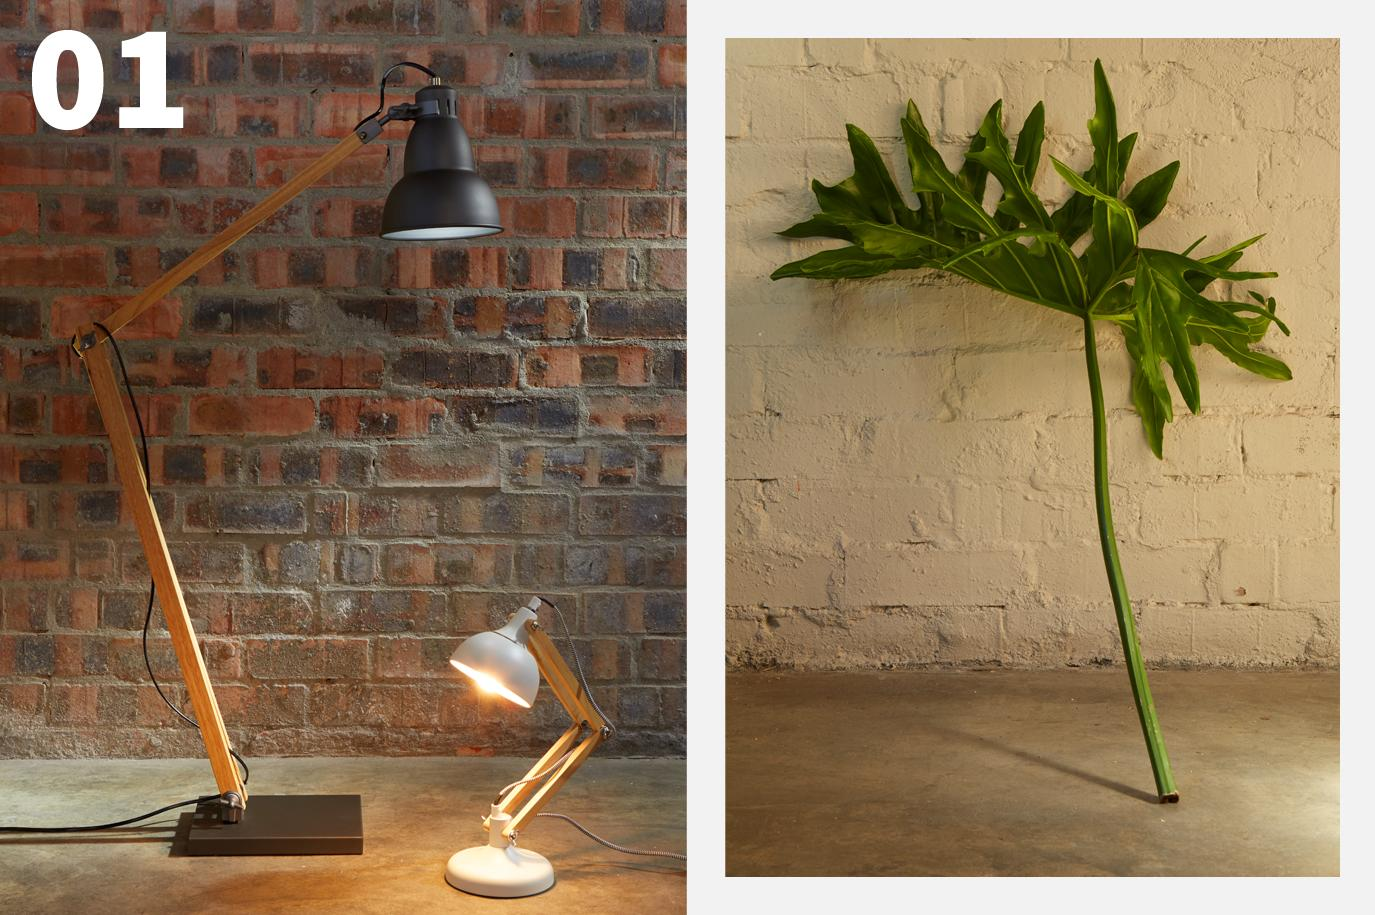 7 key lamps + lighting trends for any space